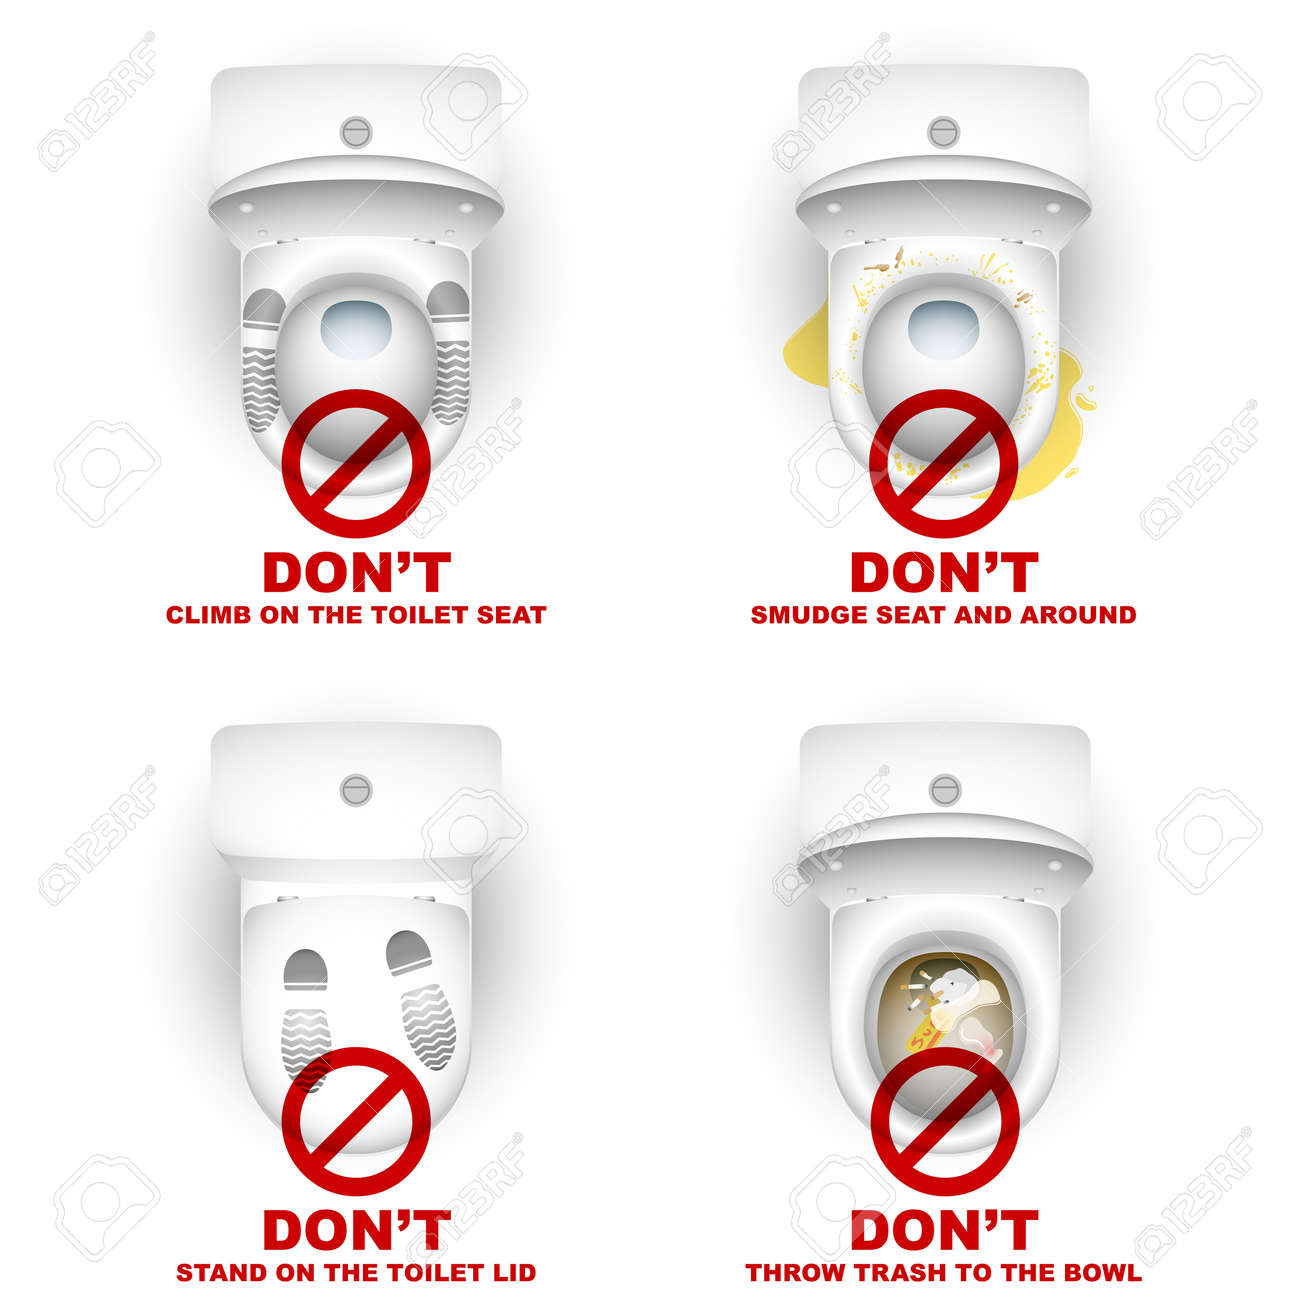 Set of toilet bowls with warning symbols and inscriptions for the rules of use; Do not climb, stand, smudge, throw - 59765615